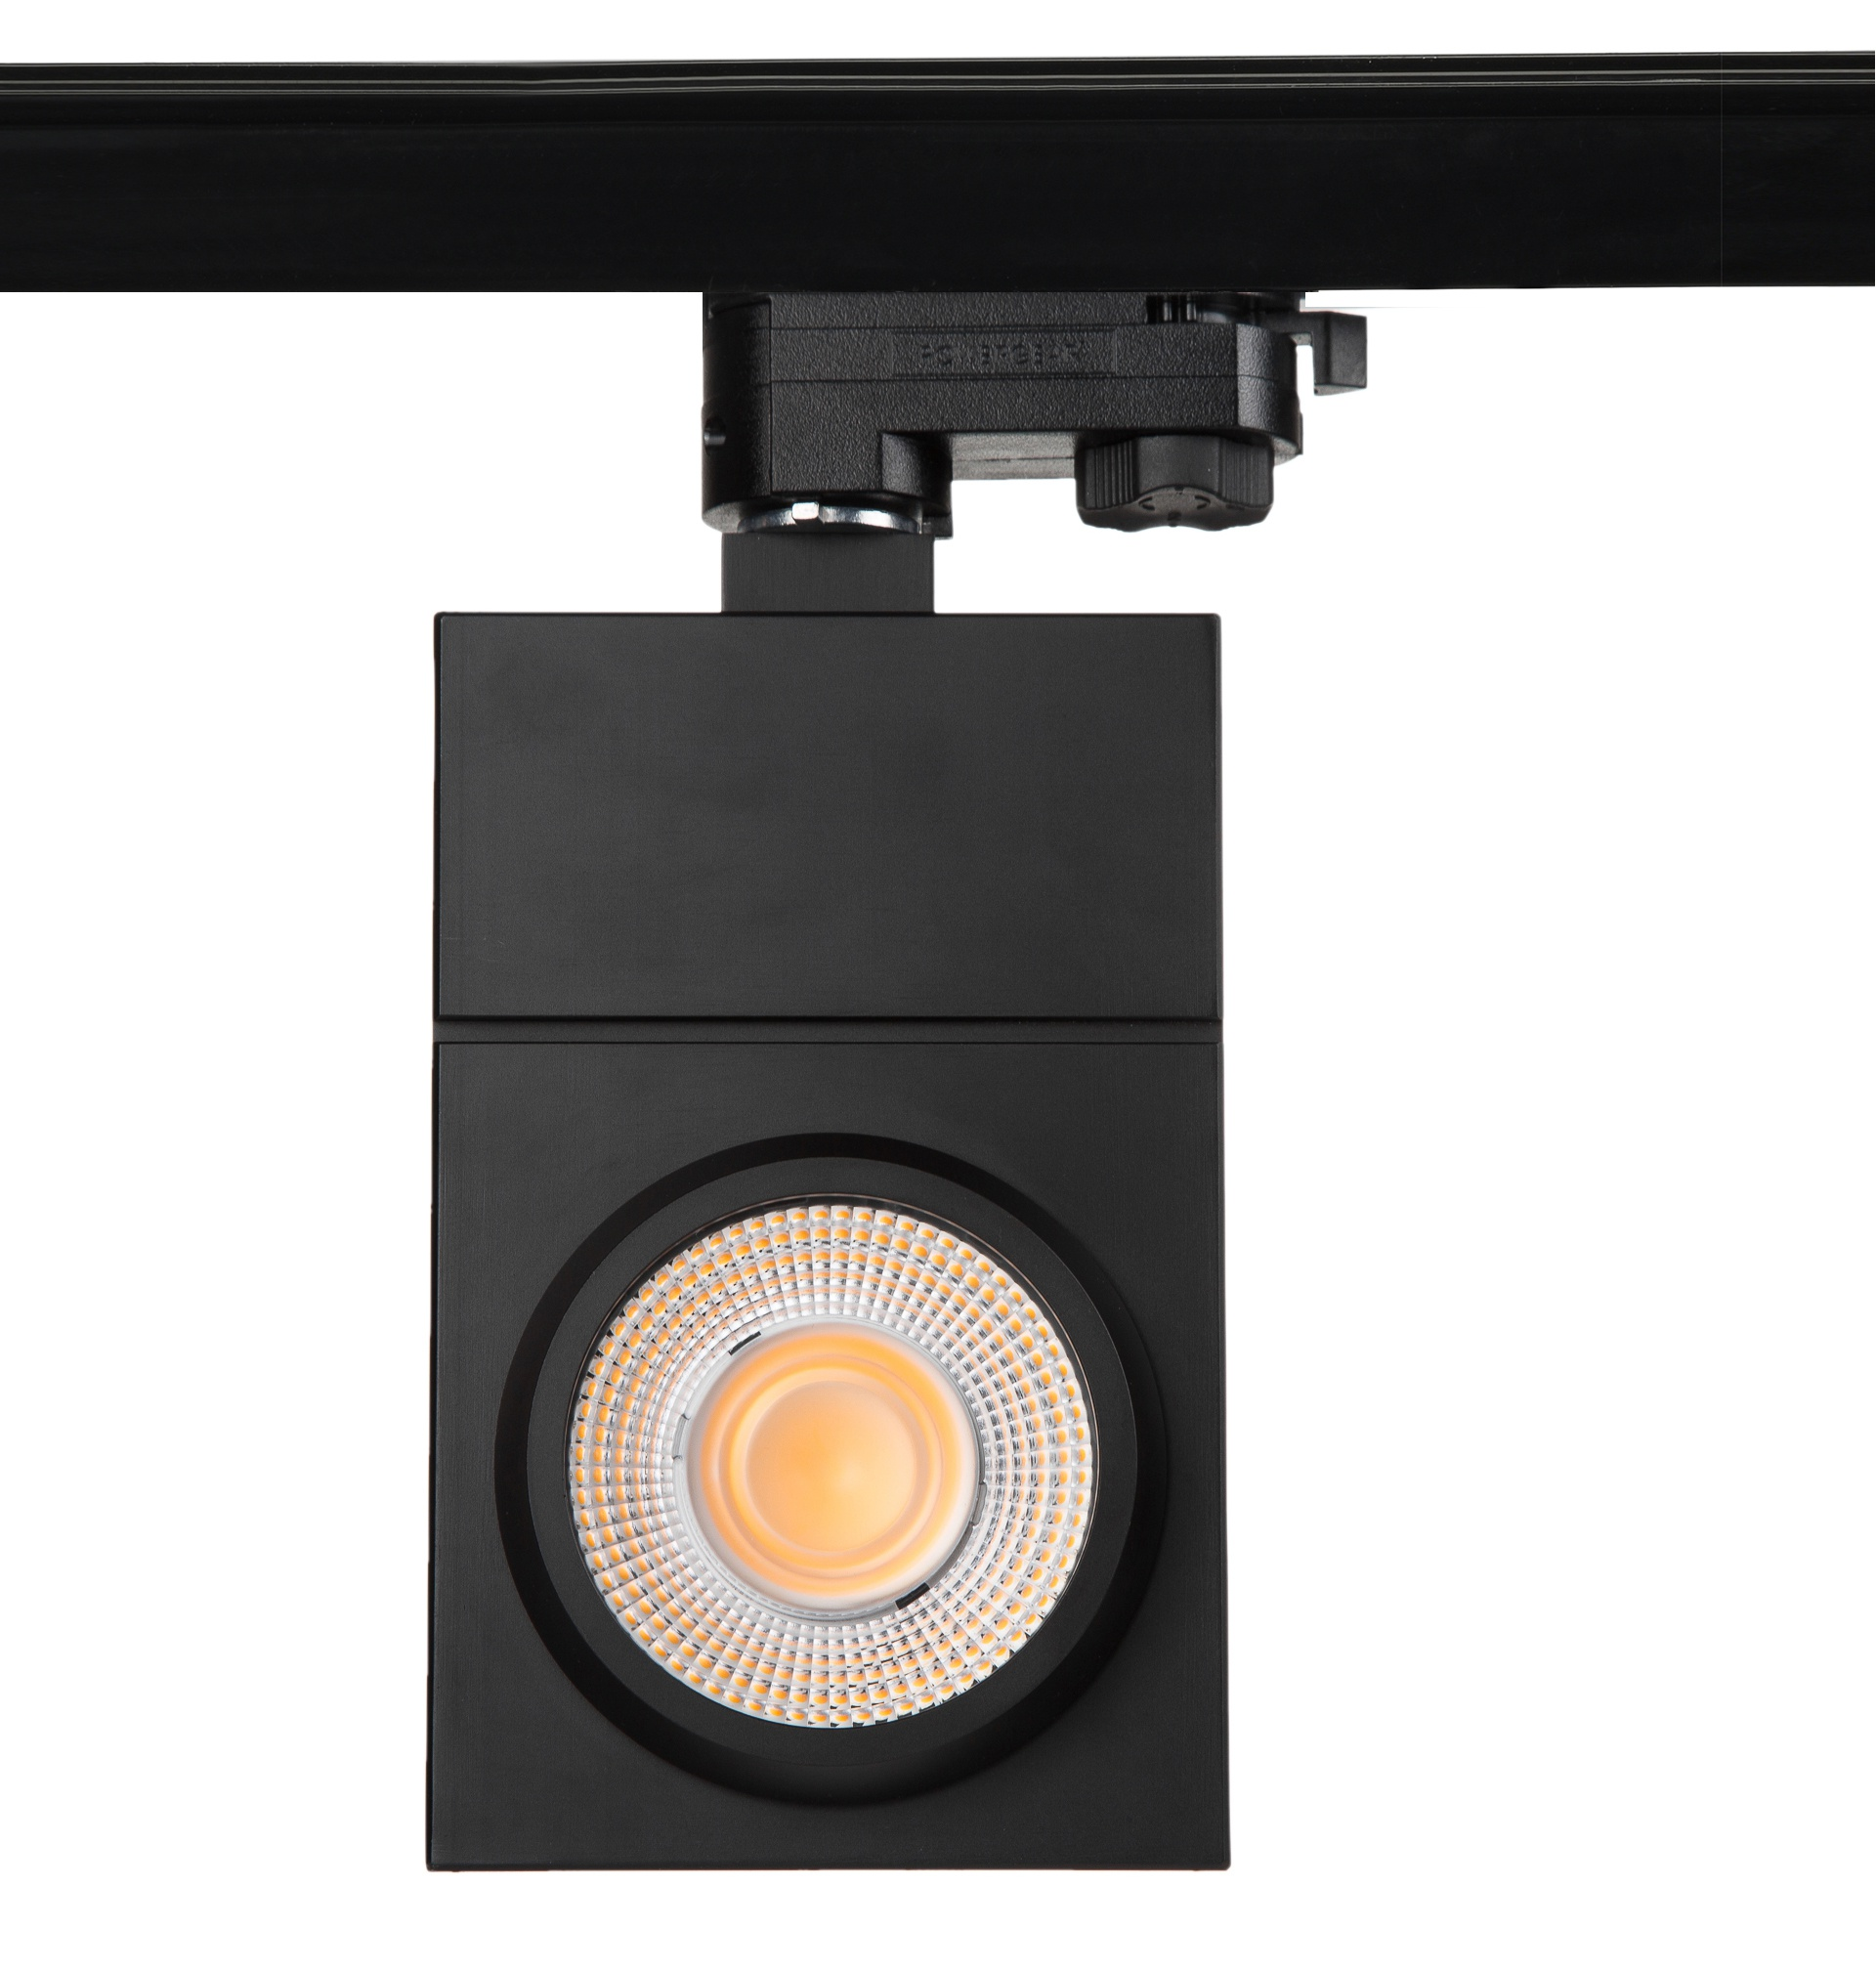 ultra thin led tracklight, square housing, built in tridonic LED driver, flicker free, Citizen COB LEDs, 110lm/W 2CRI80 4000K, UGR<19 @15,24degree